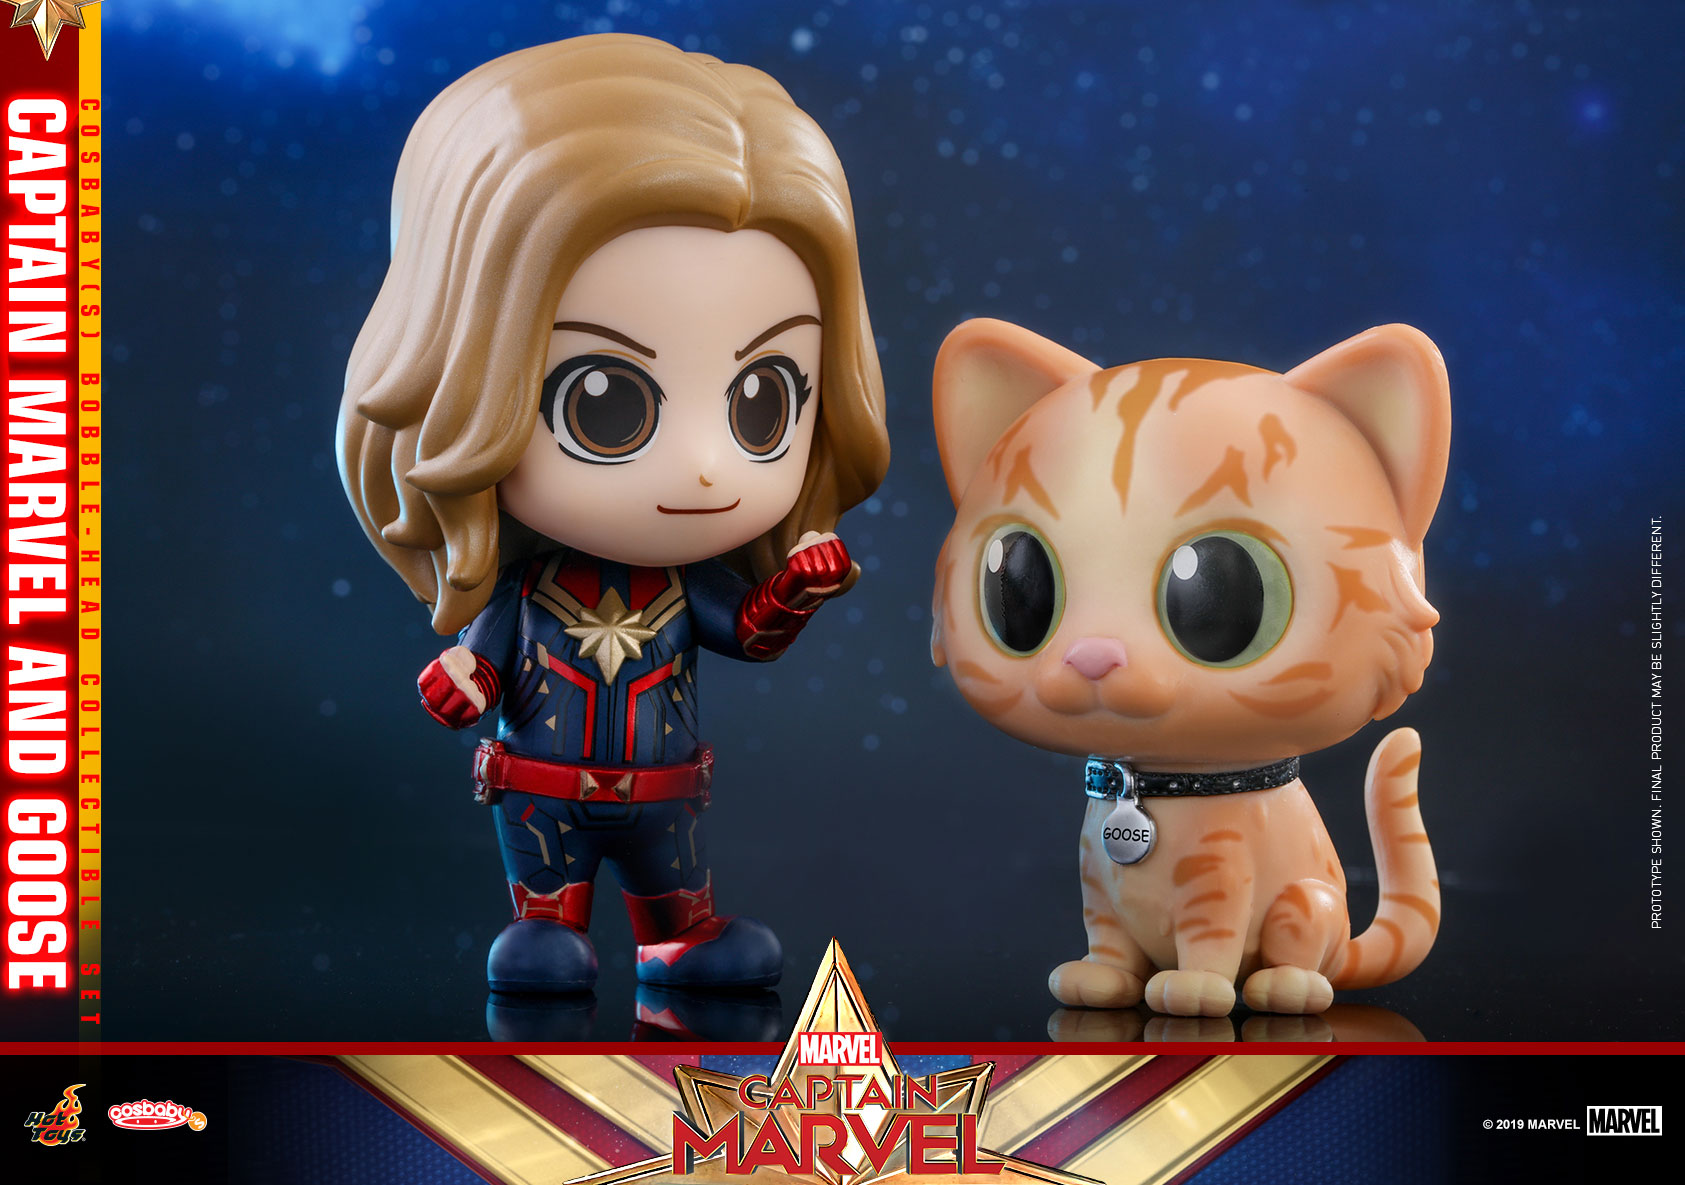 Hot-Toys---Captain-Marvel---Captain-Marvel-and-Goose-Cosbaby-Bobble-head-Collectible-Set-(S)_PR1